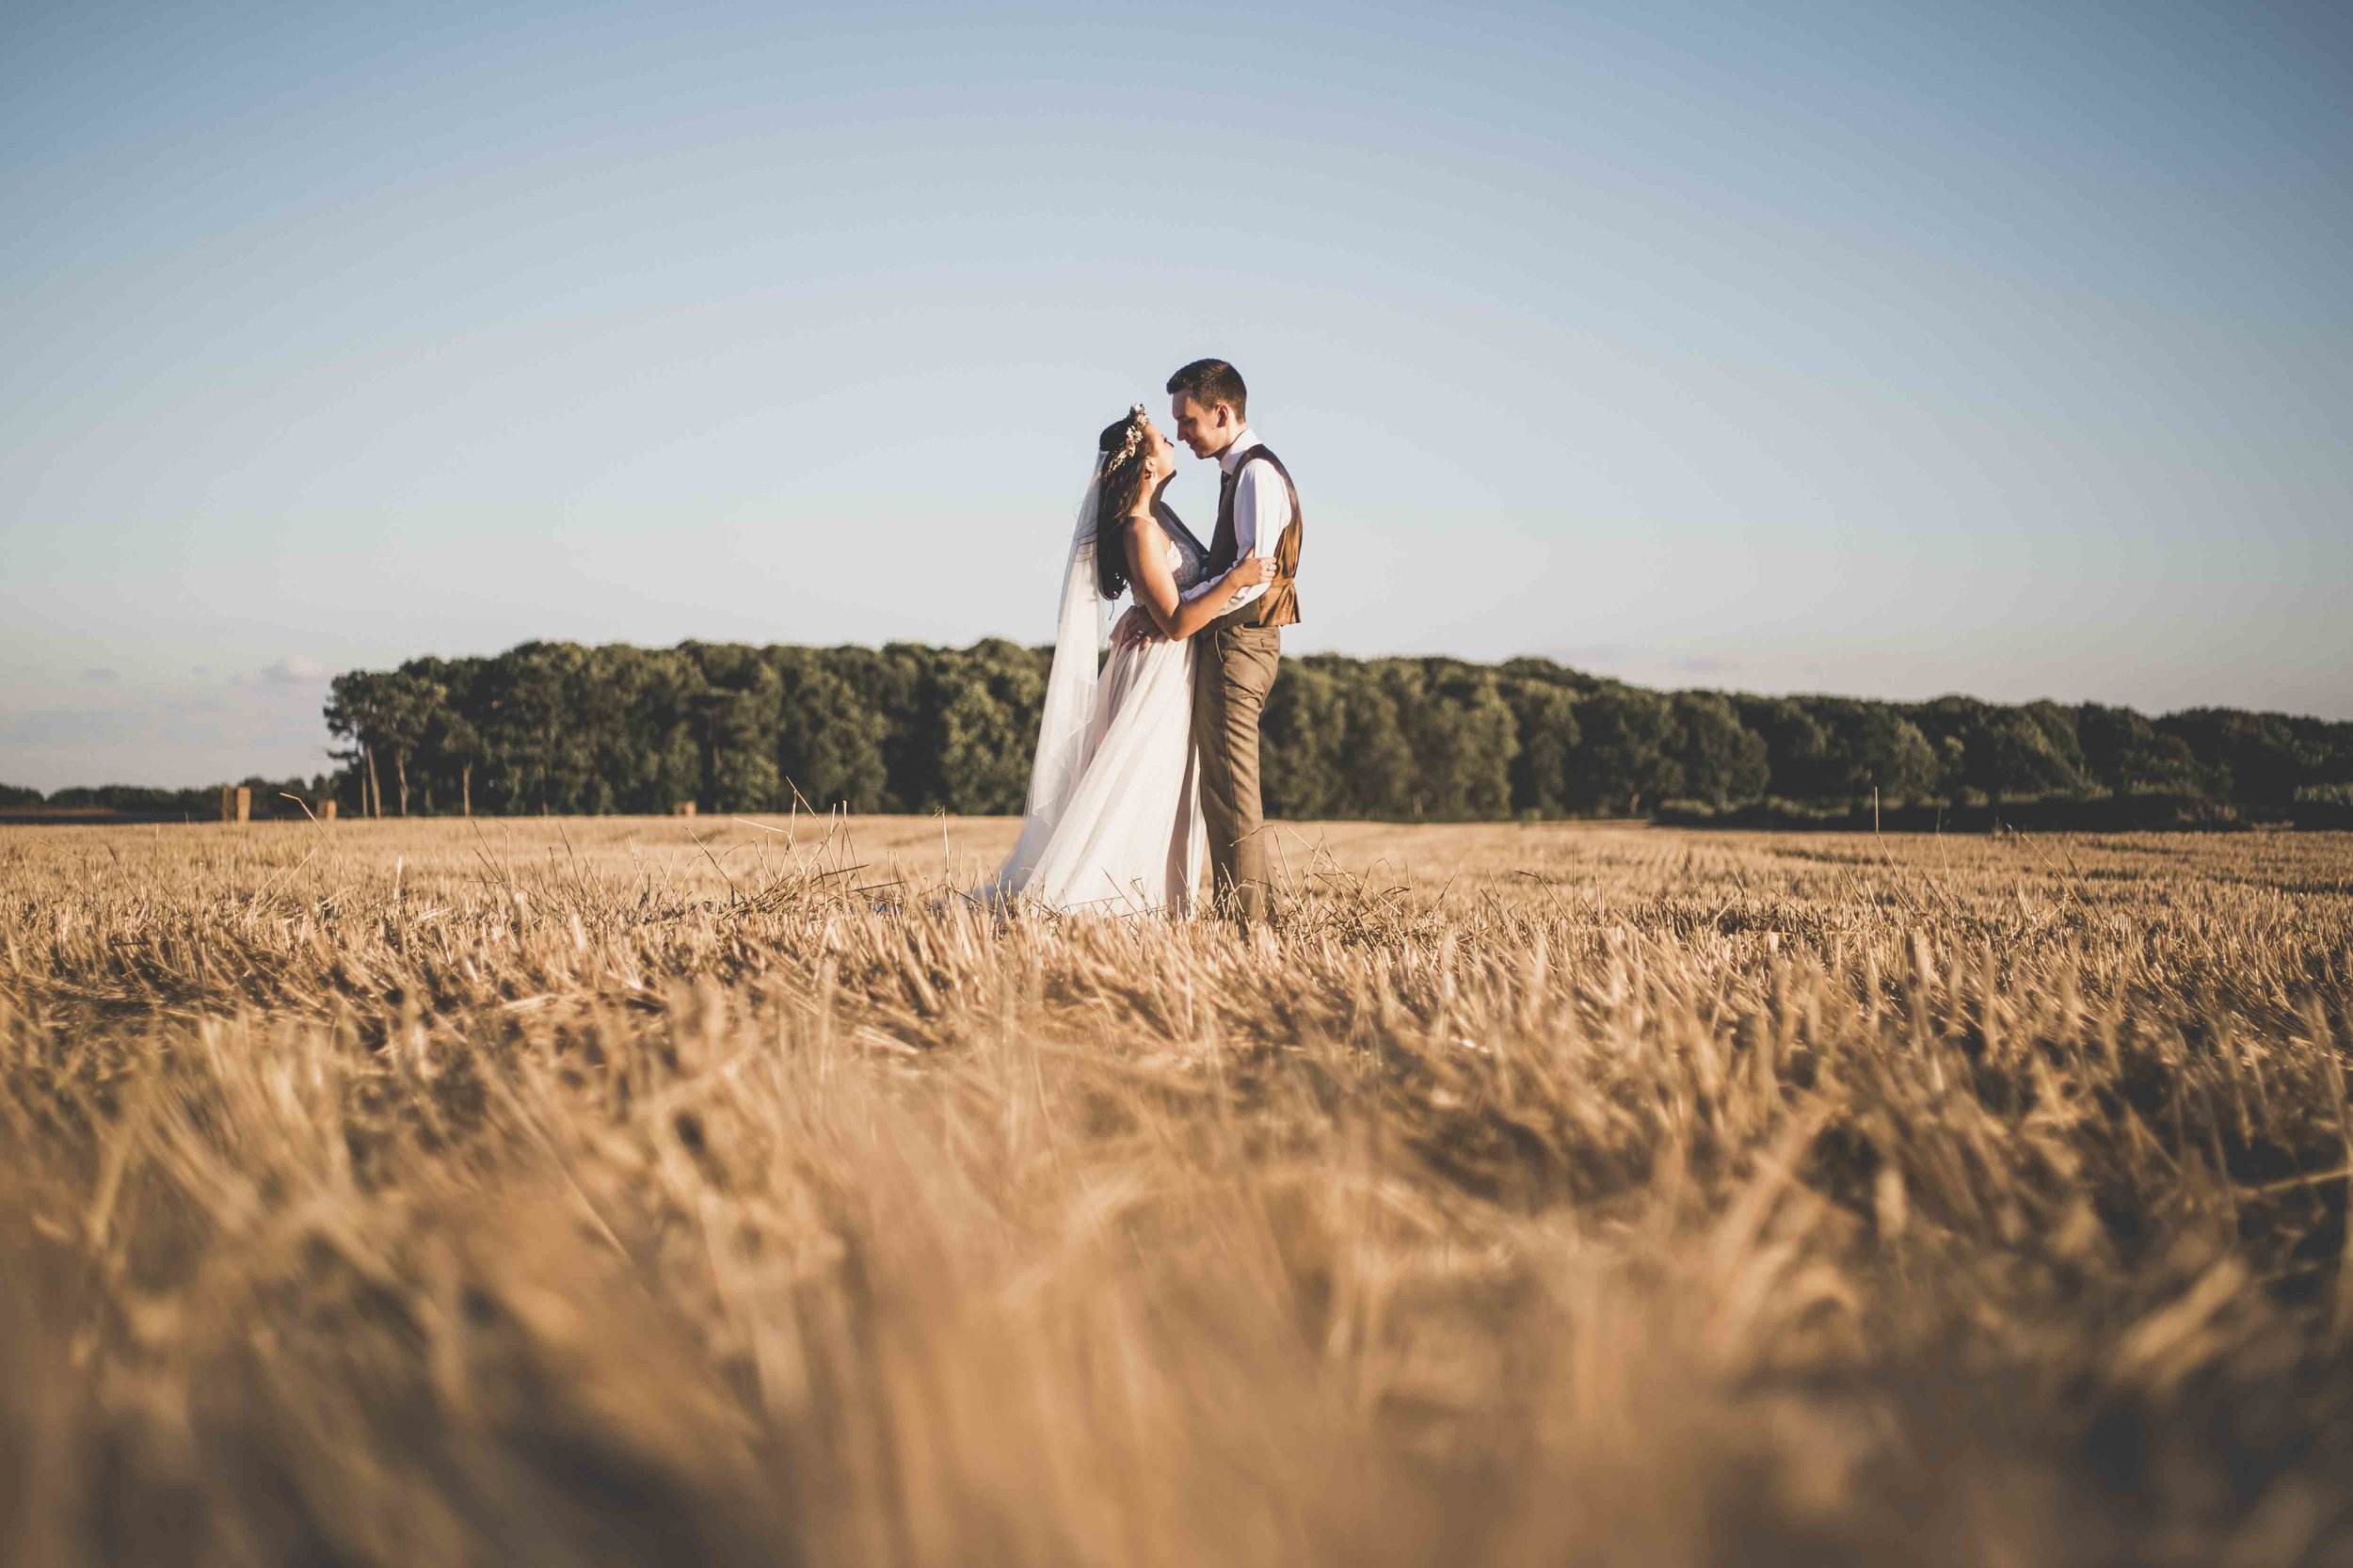 sunset wedding photography hull.jpg